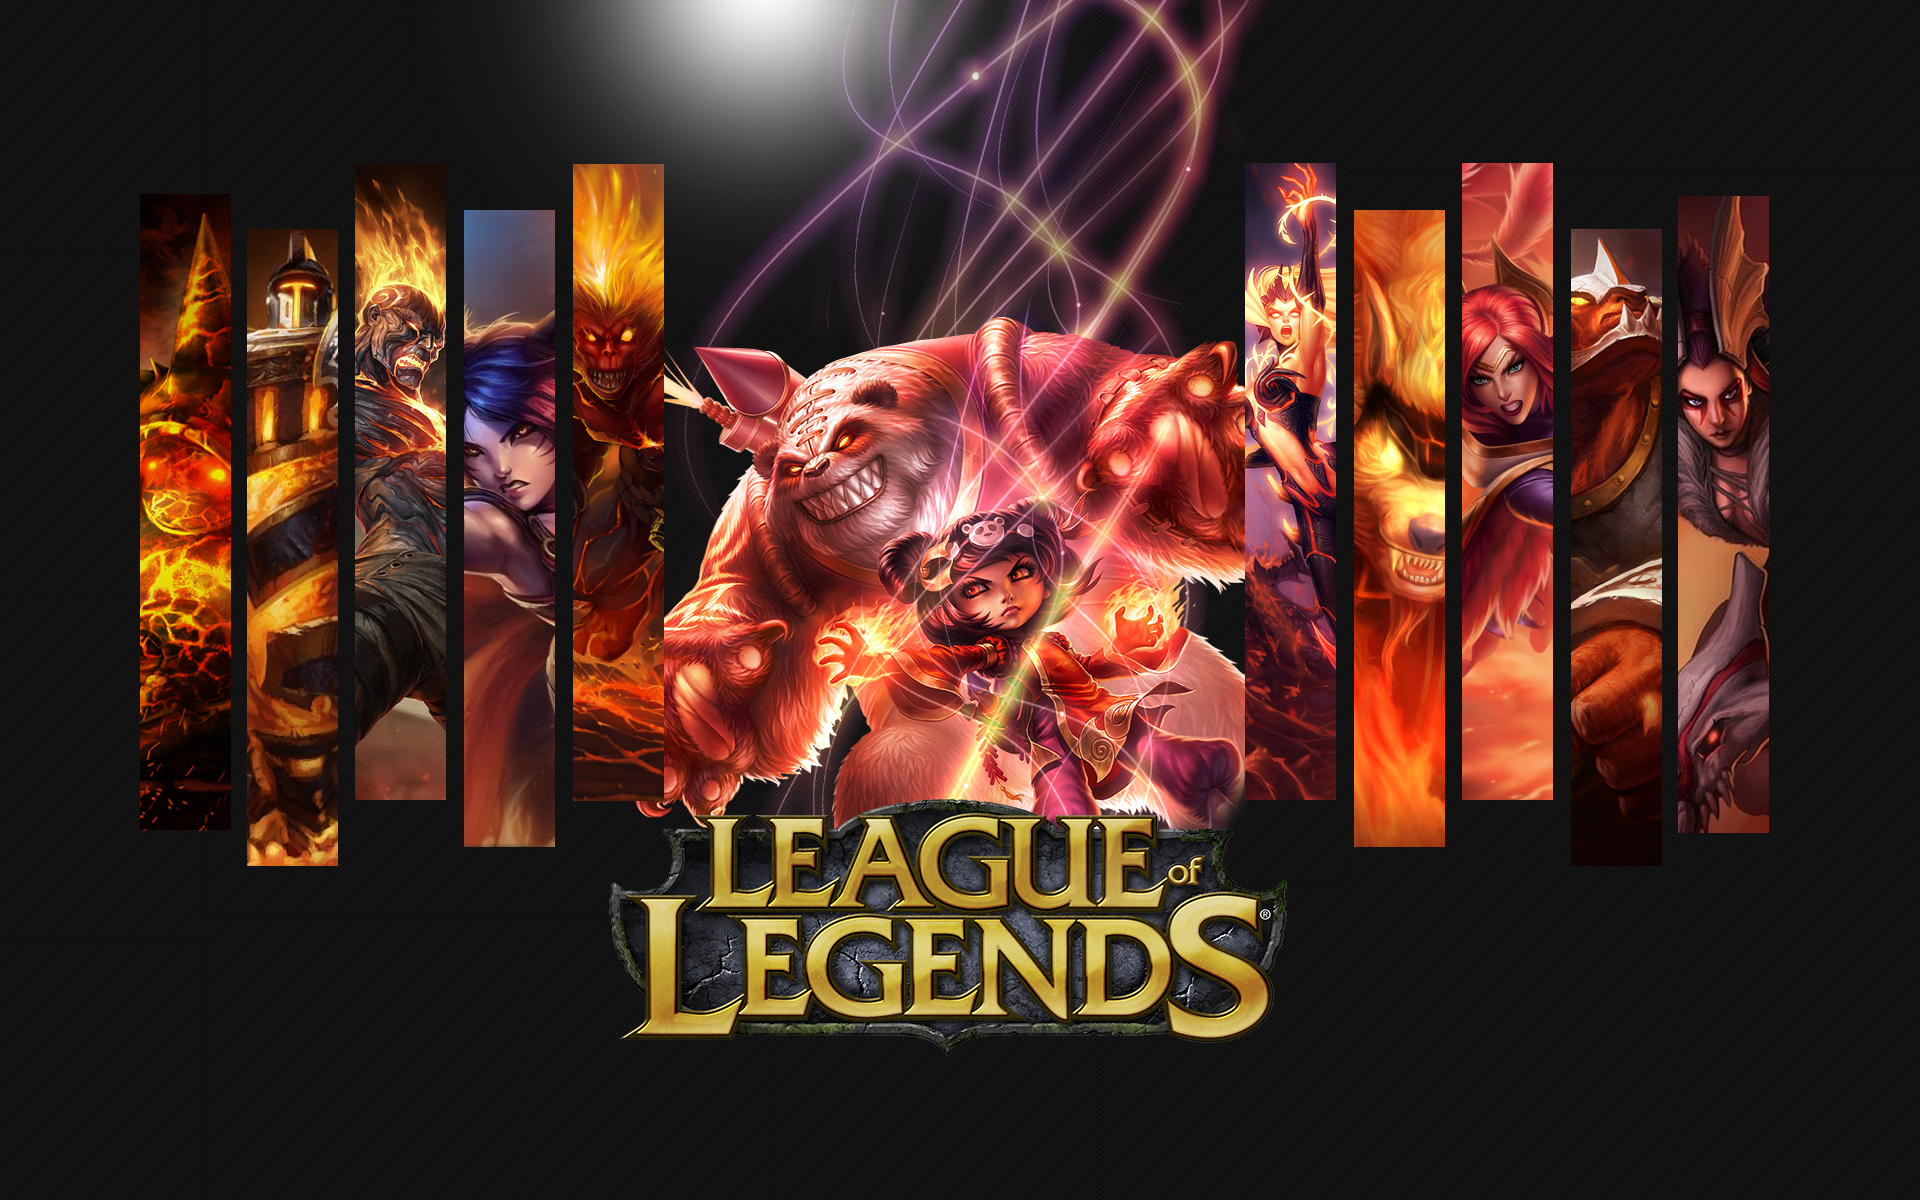 League of legends wallpaper pack - Annie League Of Legends Wallpaper By Viciousblue